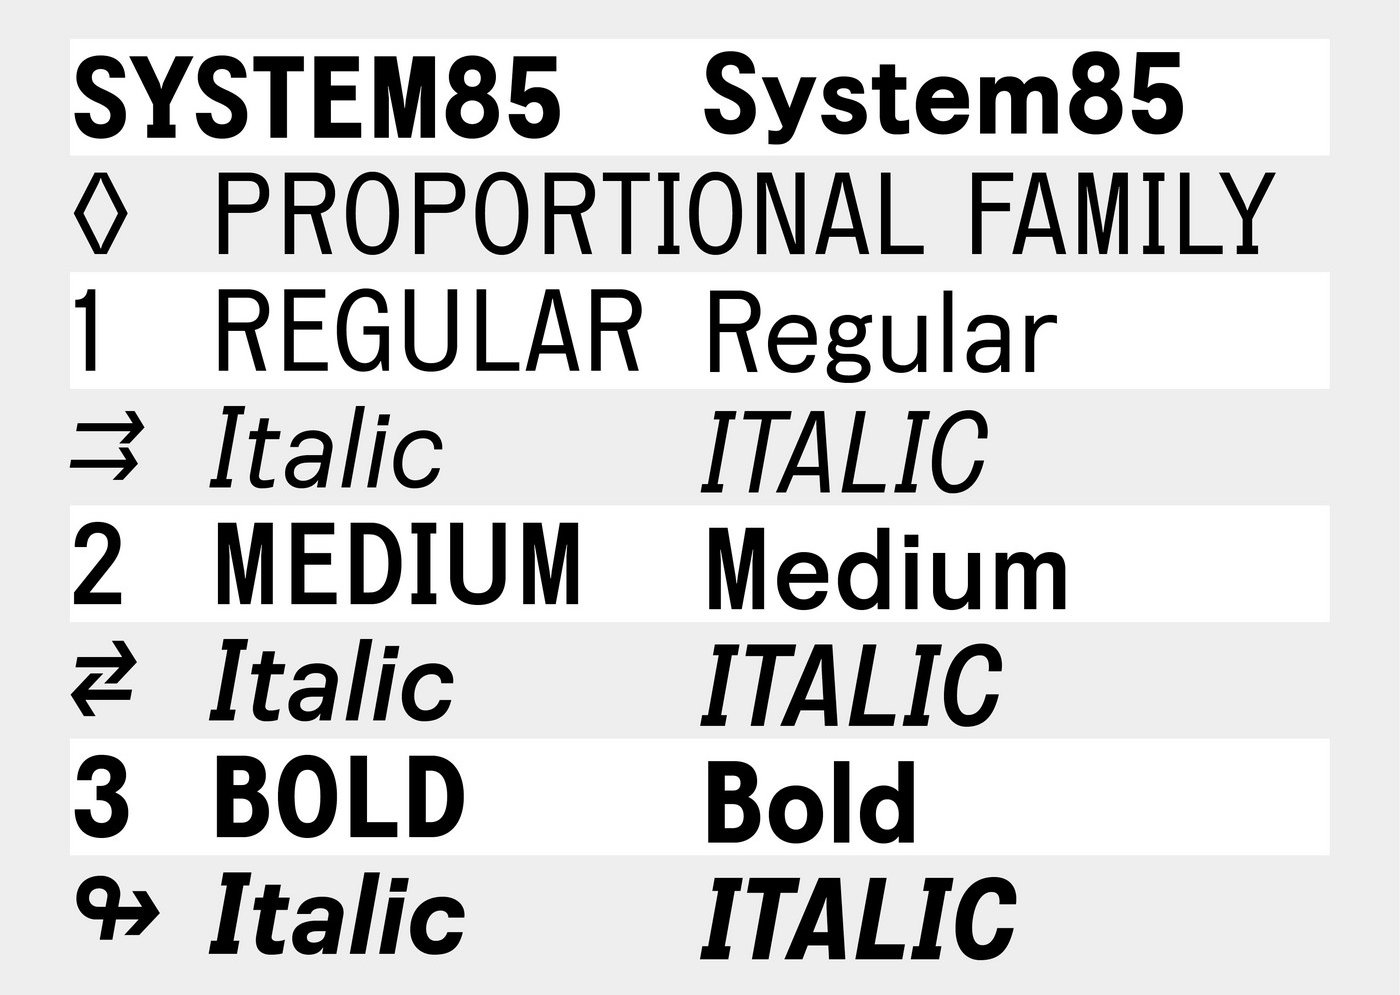 System 85 by Colophon Foundry